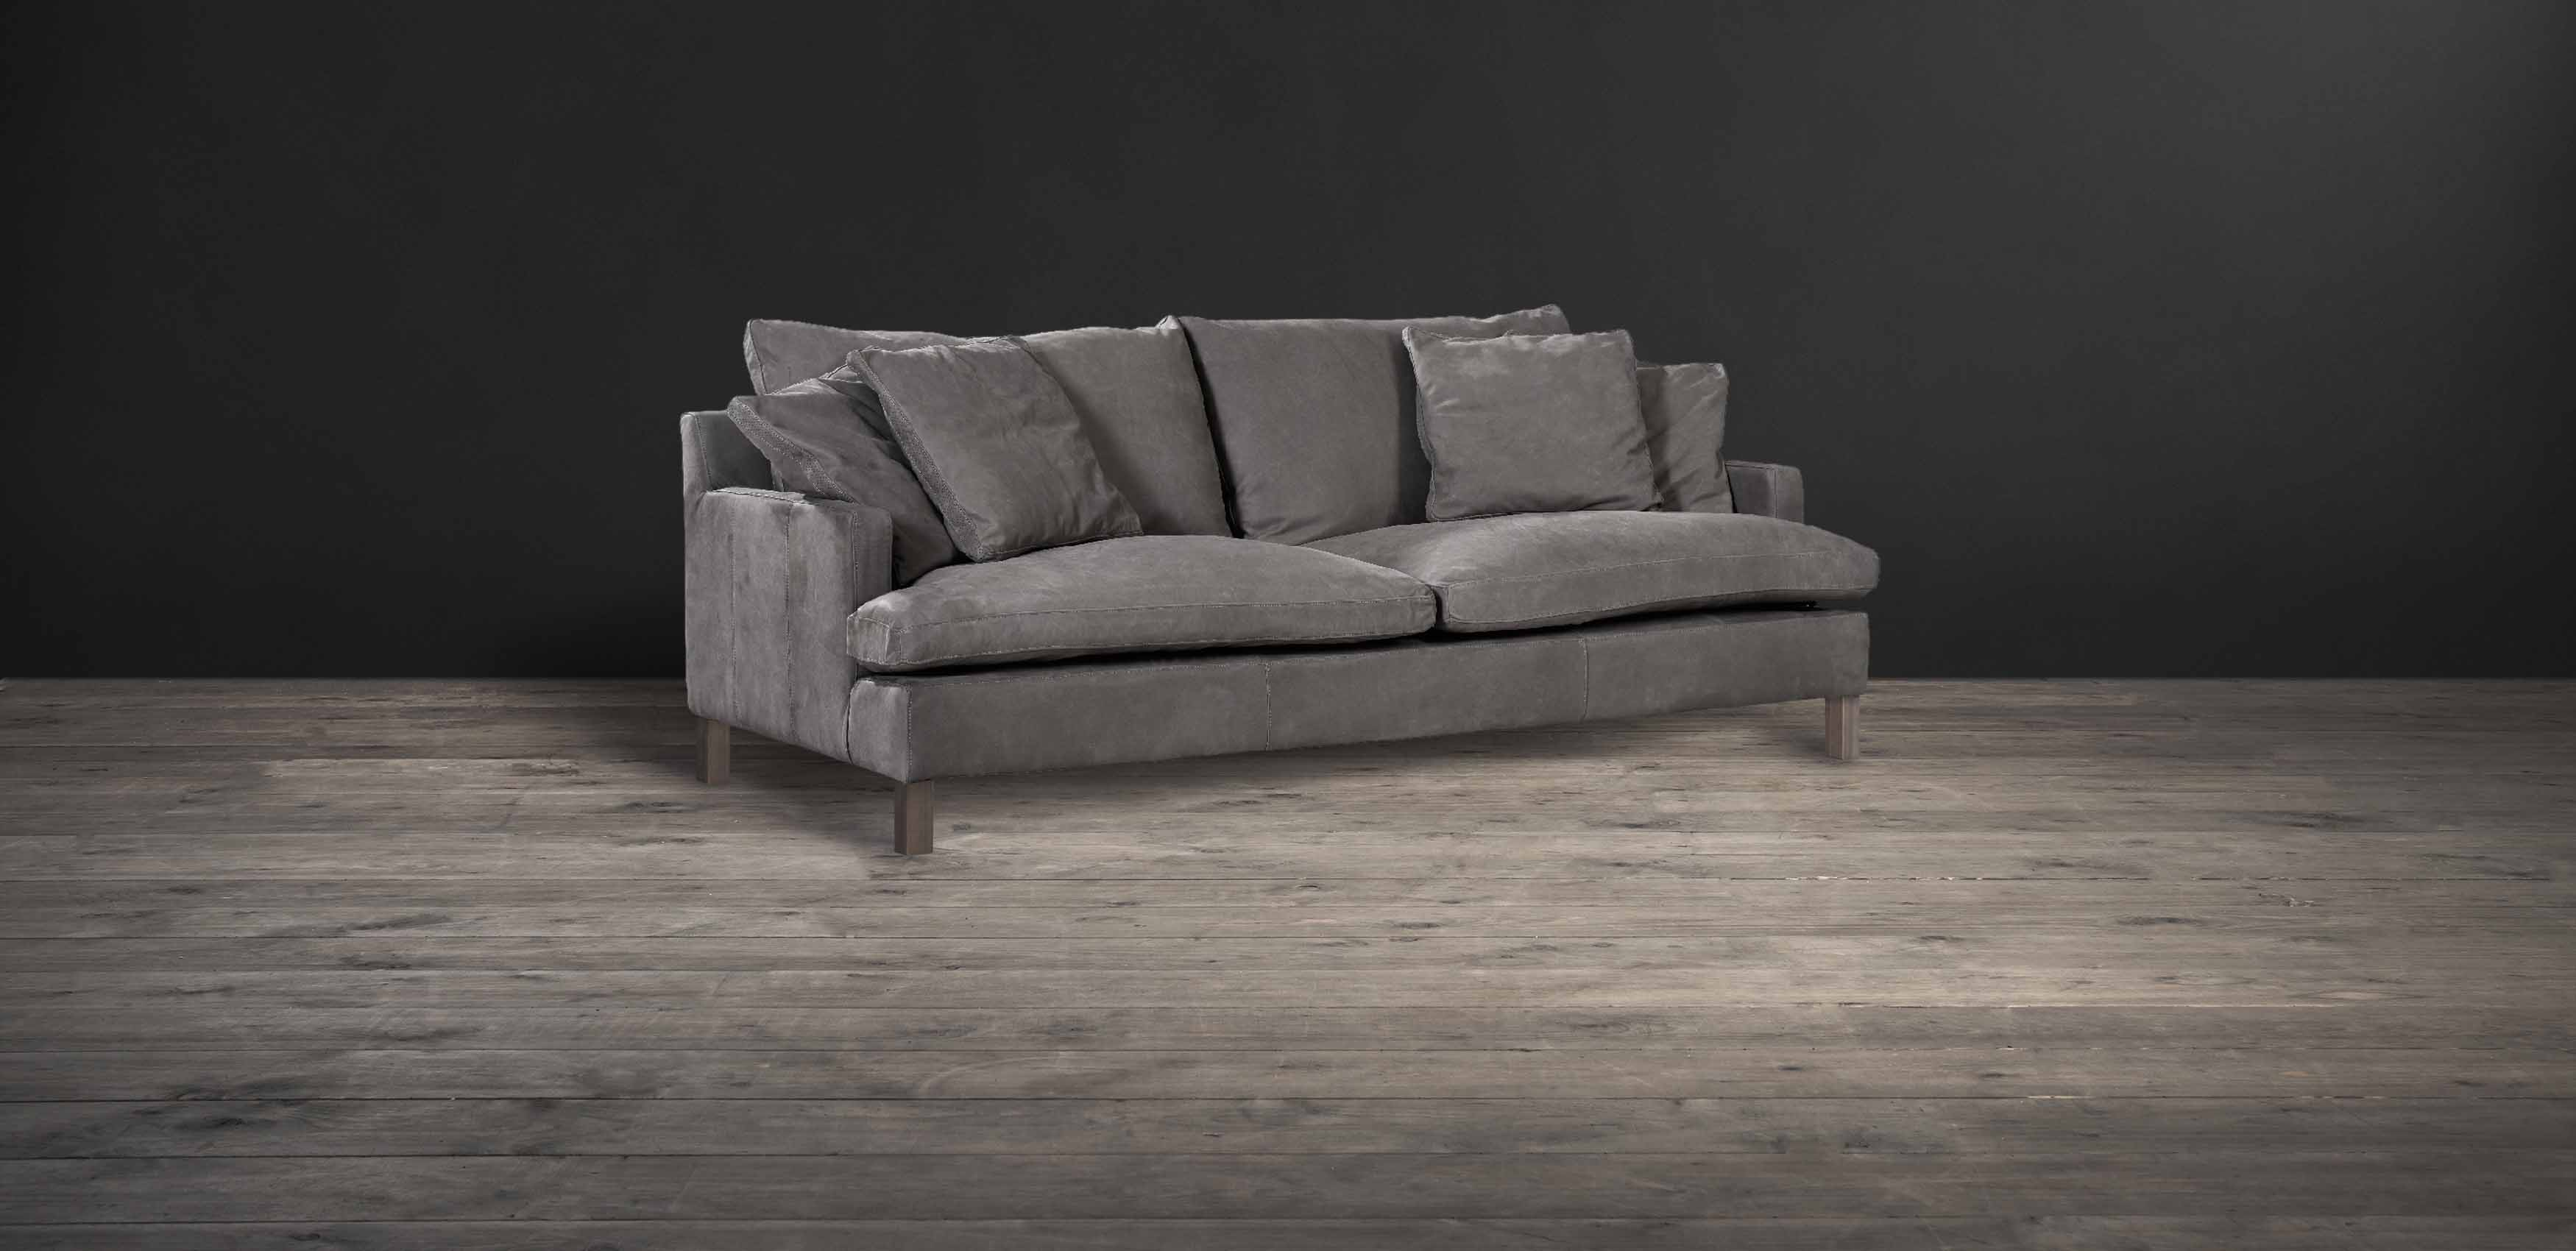 Lux sofa in Tomahawk leather